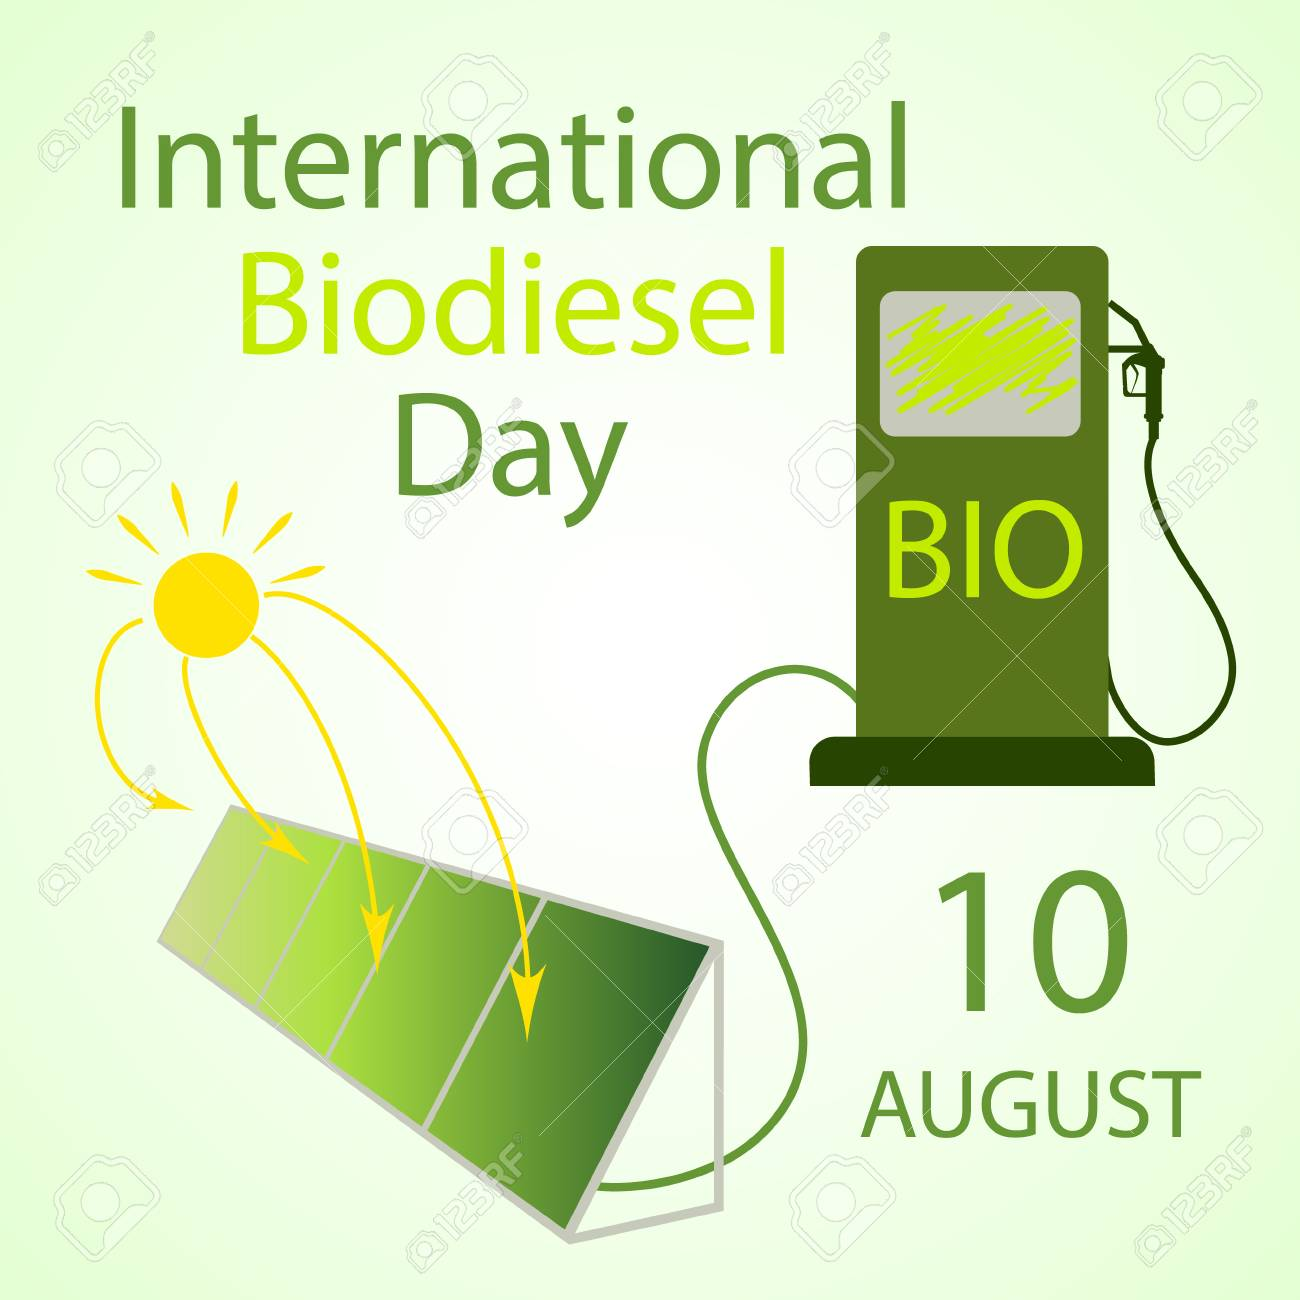 International Biodiseasel Day - 10 August